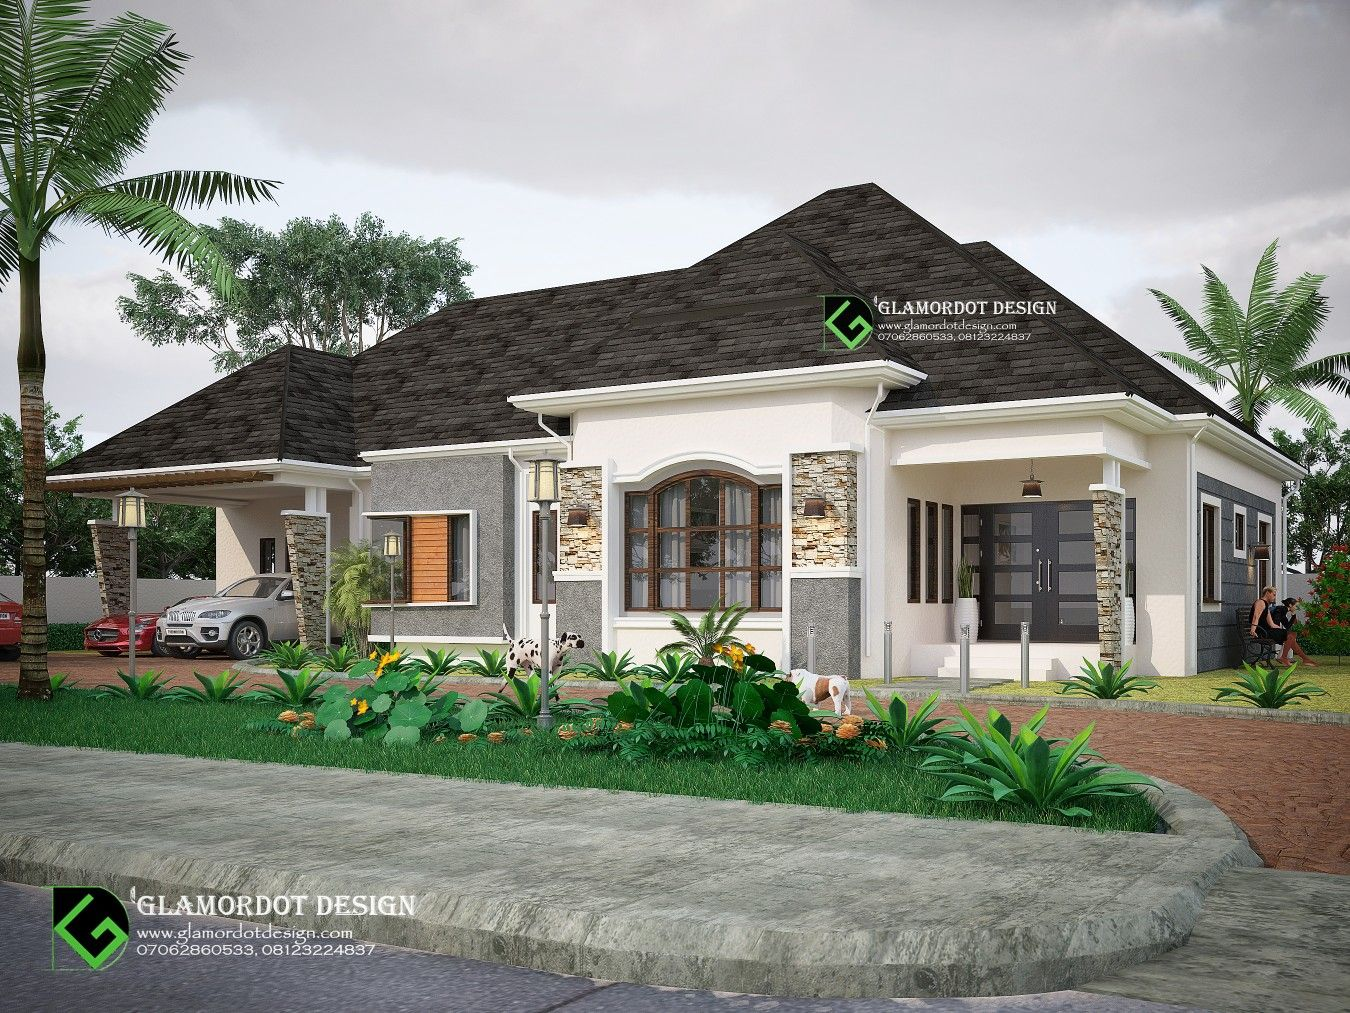 4 Bedroom Bungalow Design With A 2 Car Garage Attached For